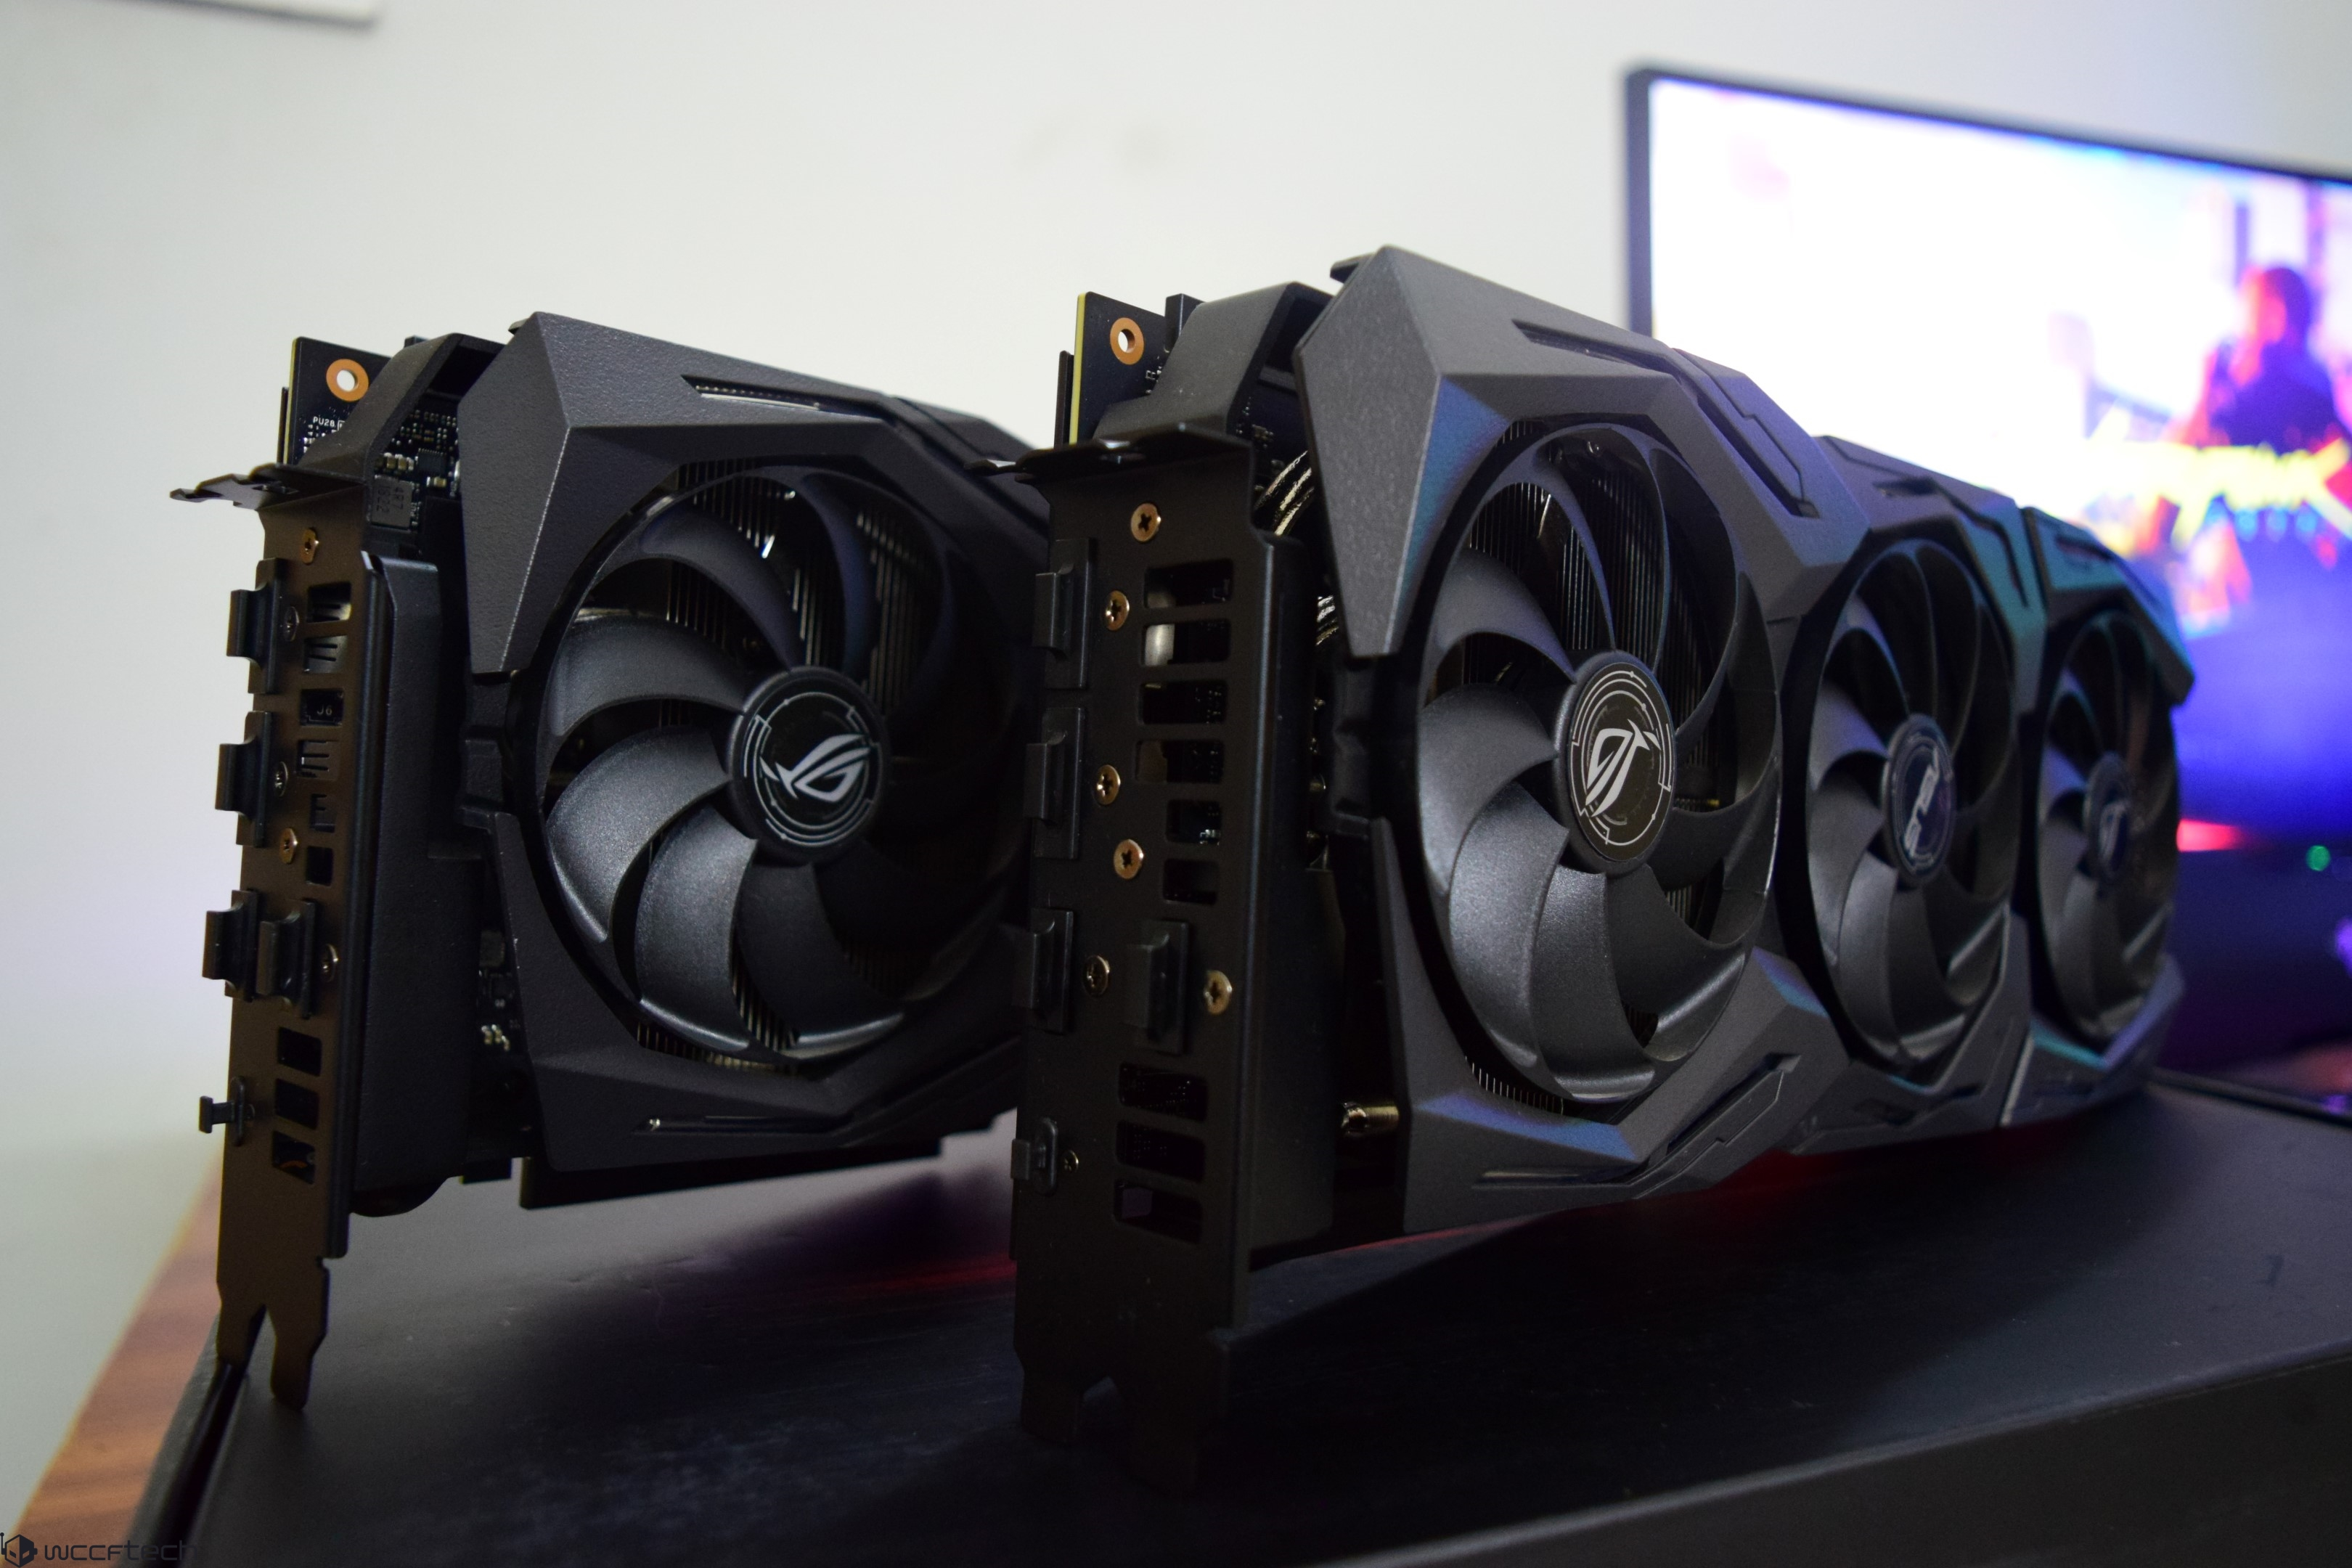 ASUS ROG STRIX GeForce RTX 2080 Ti 11 GB OC and ROG STRIX